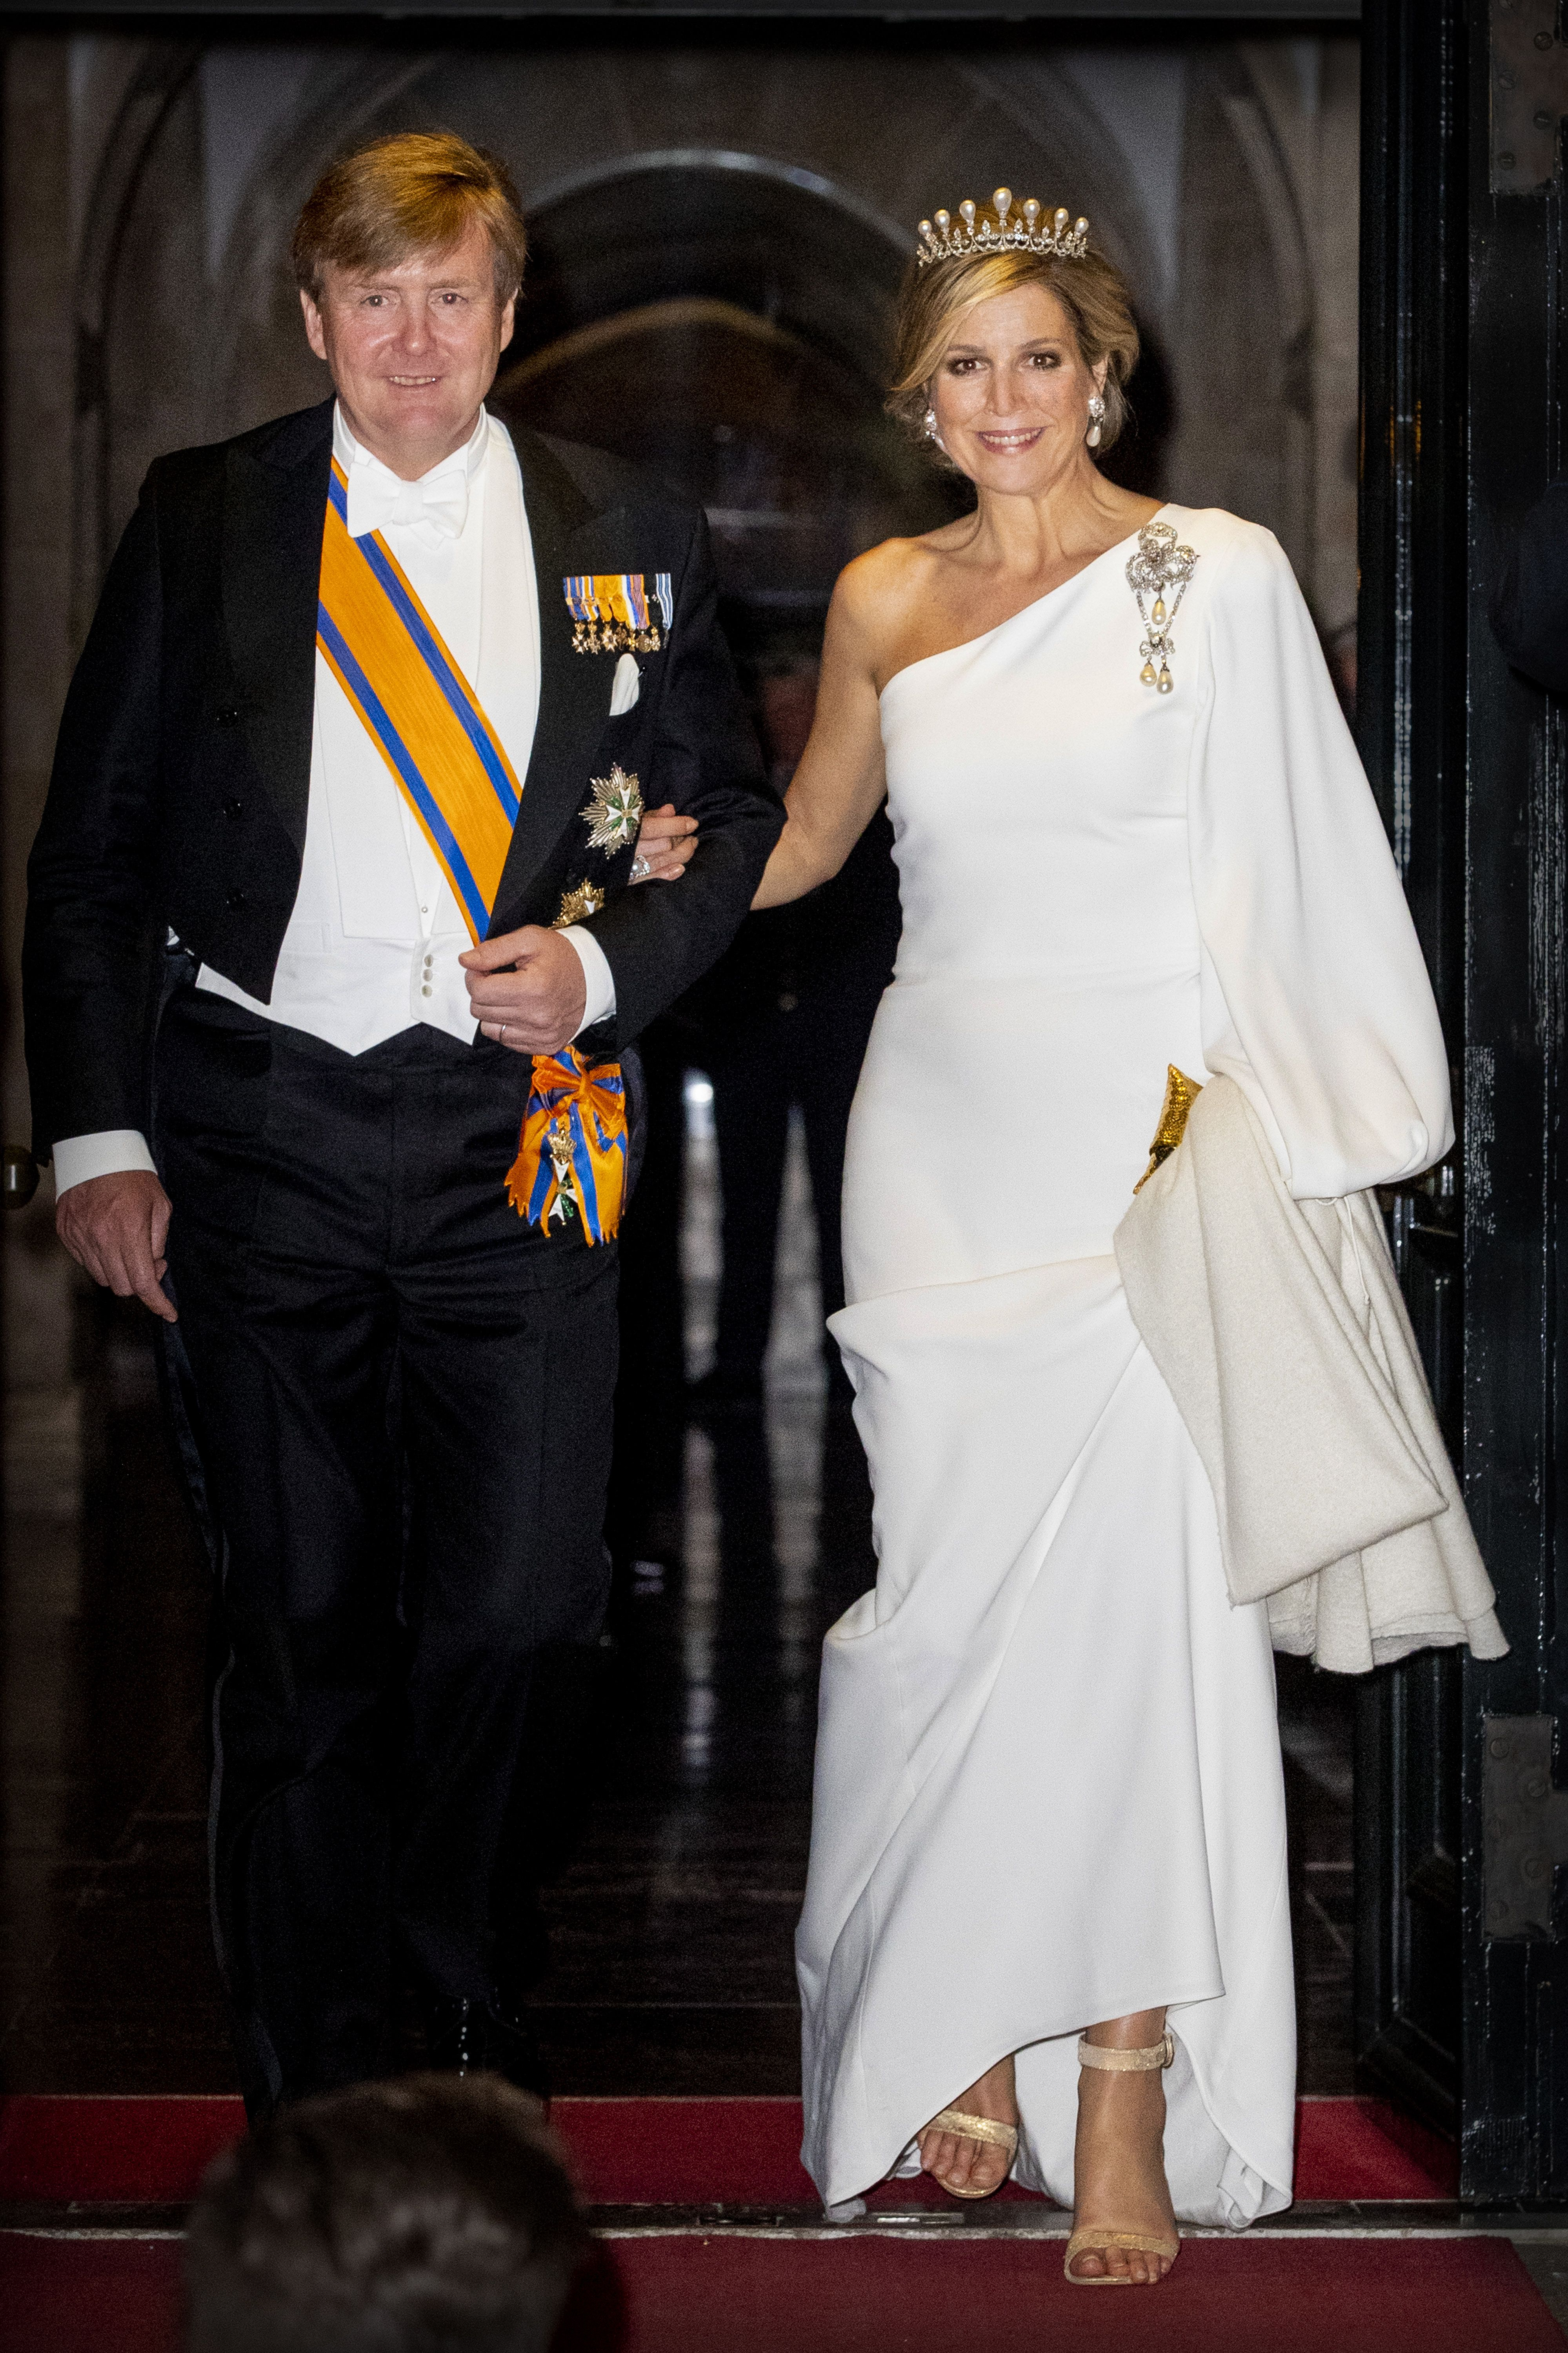 We are honoured to have dressed Queen Máxima of the